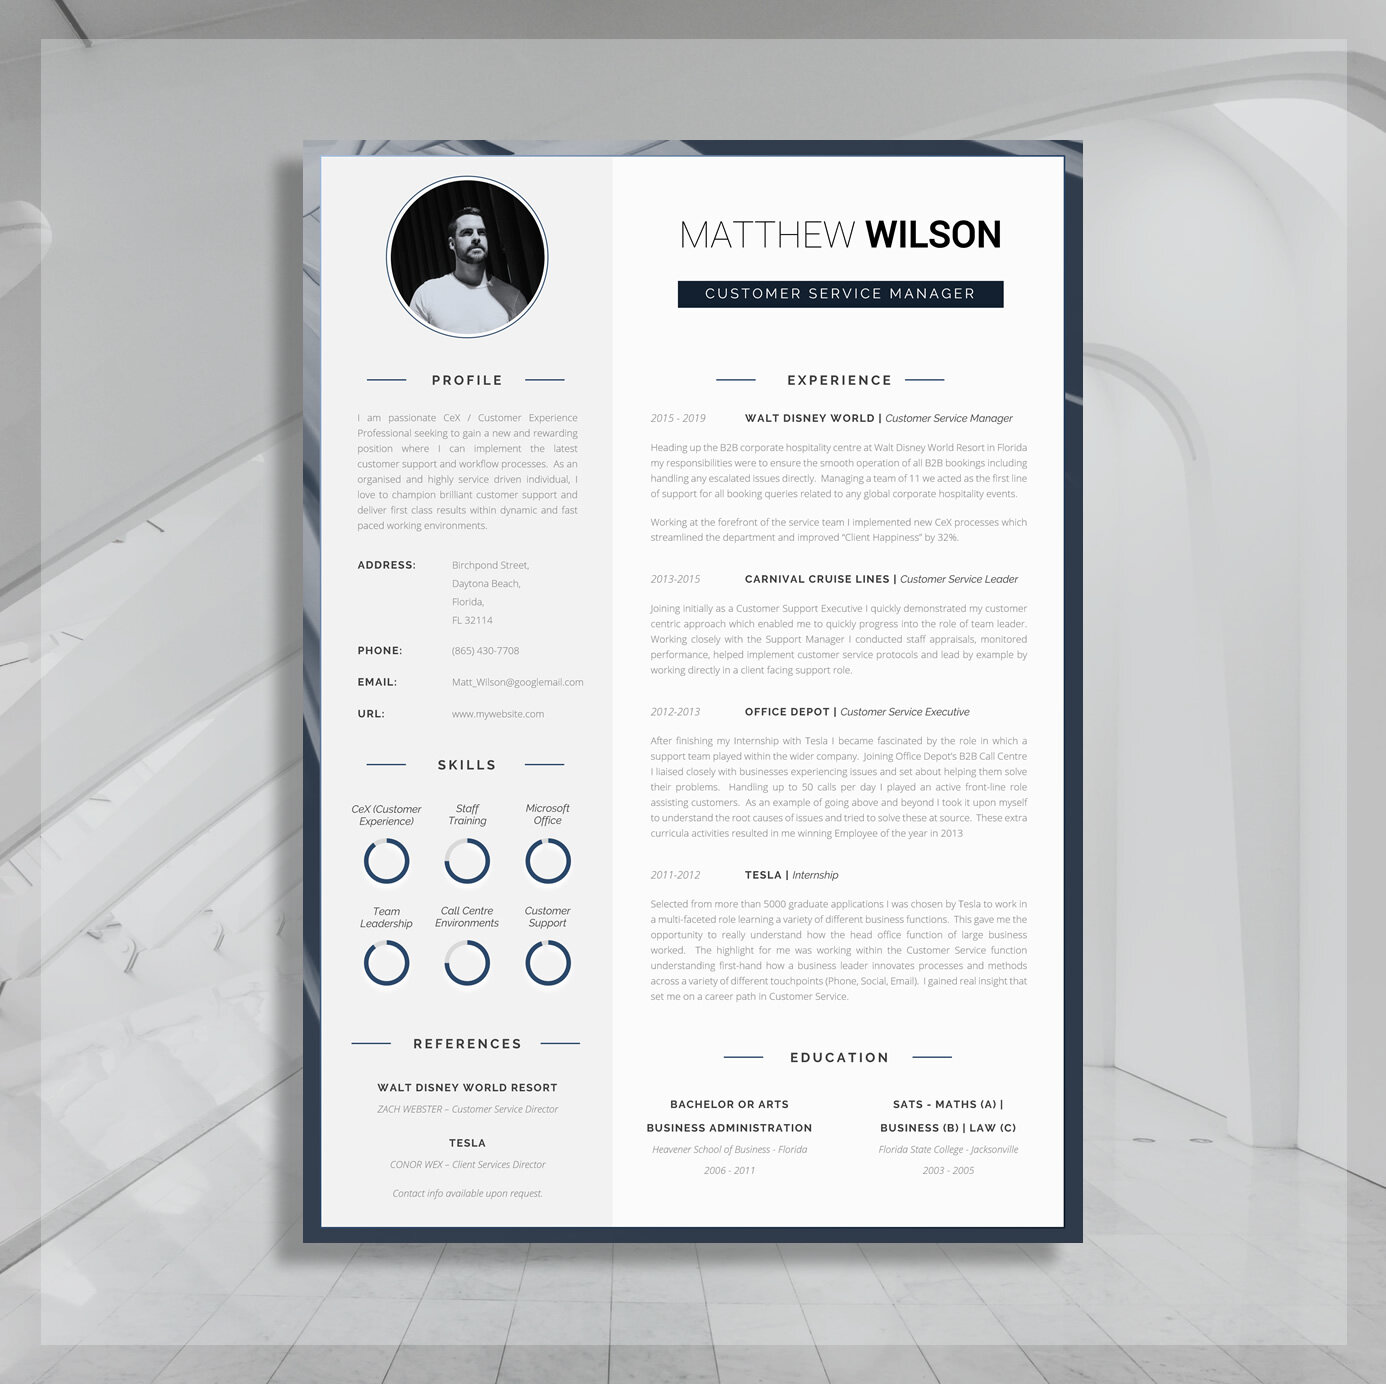 Download Template For Resume from images.squarespace-cdn.com